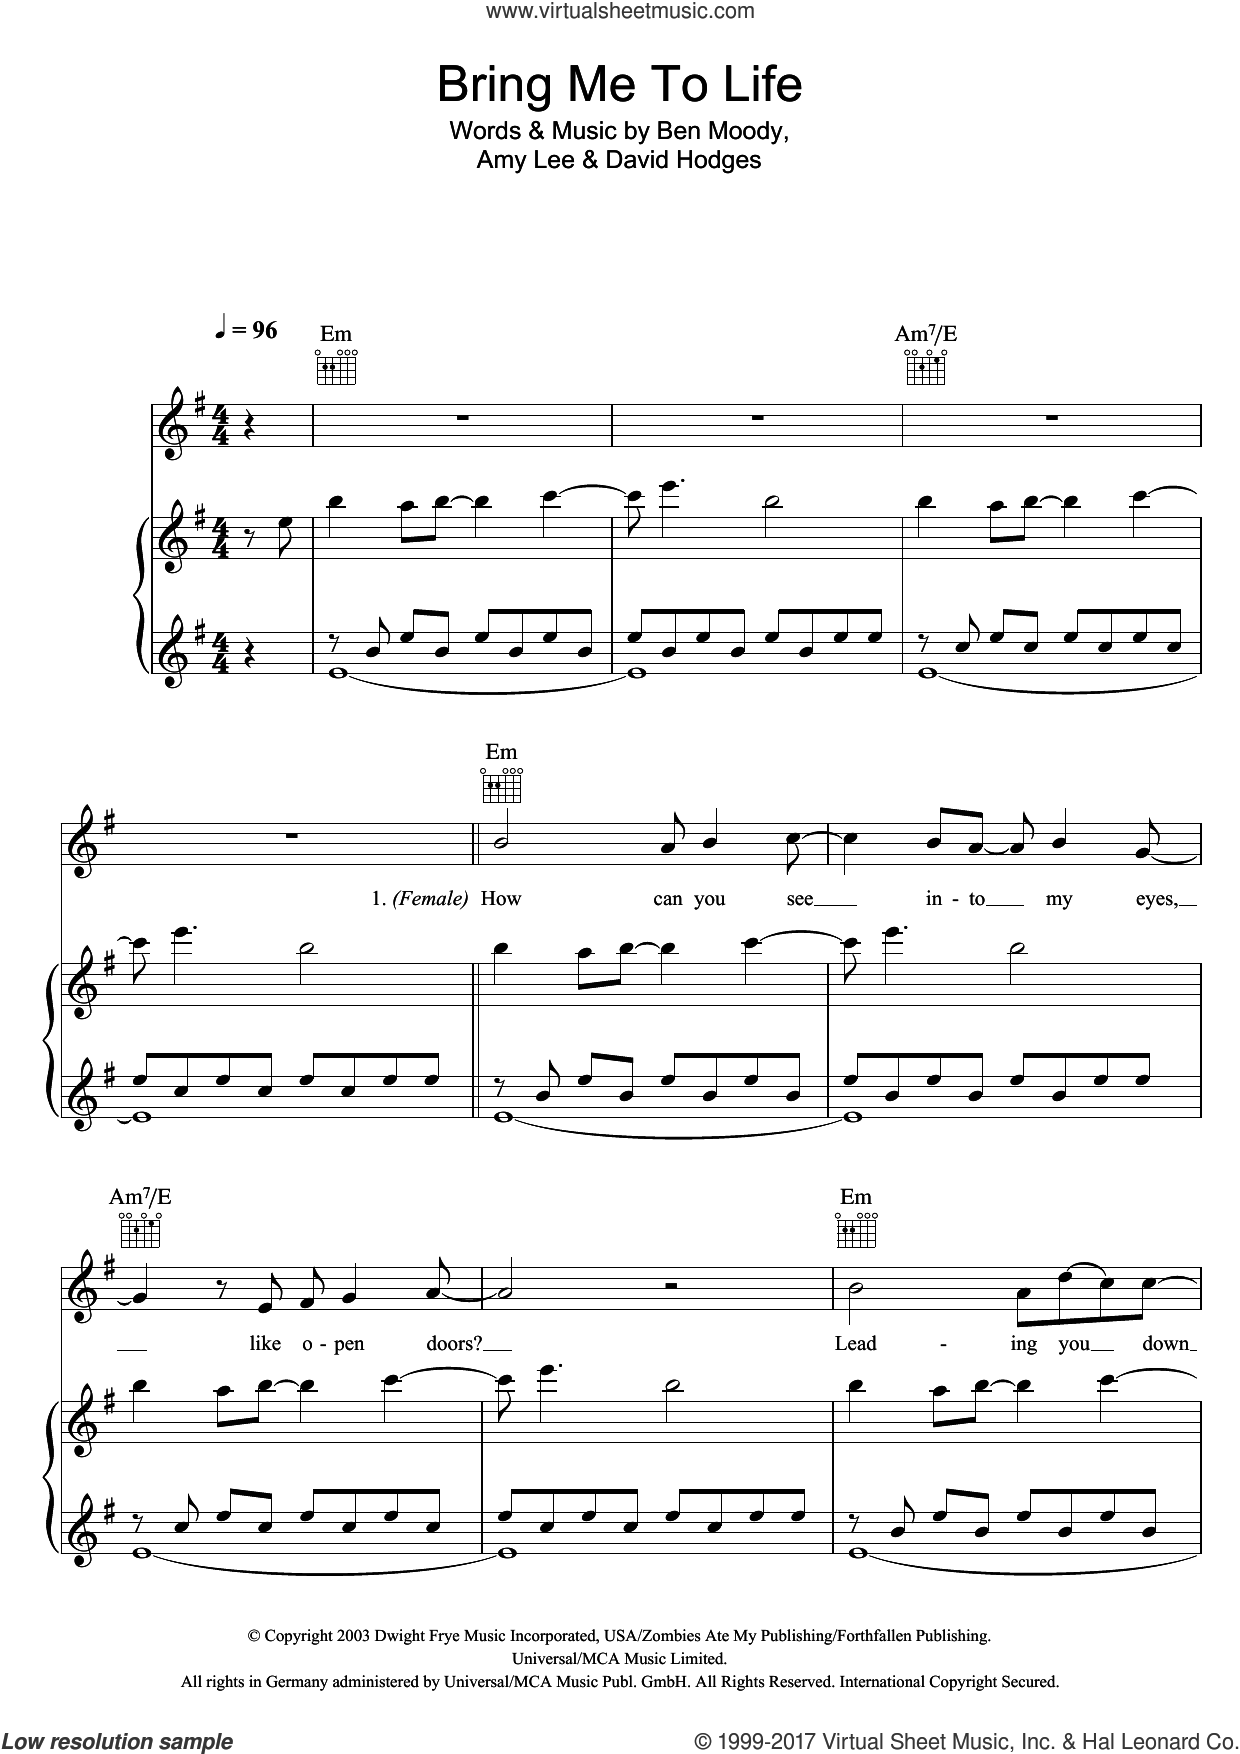 Bring Me To Life sheet music for voice, piano or guitar by Evanescence, Amy Lee, Ben Moody and David Hodges, intermediate skill level